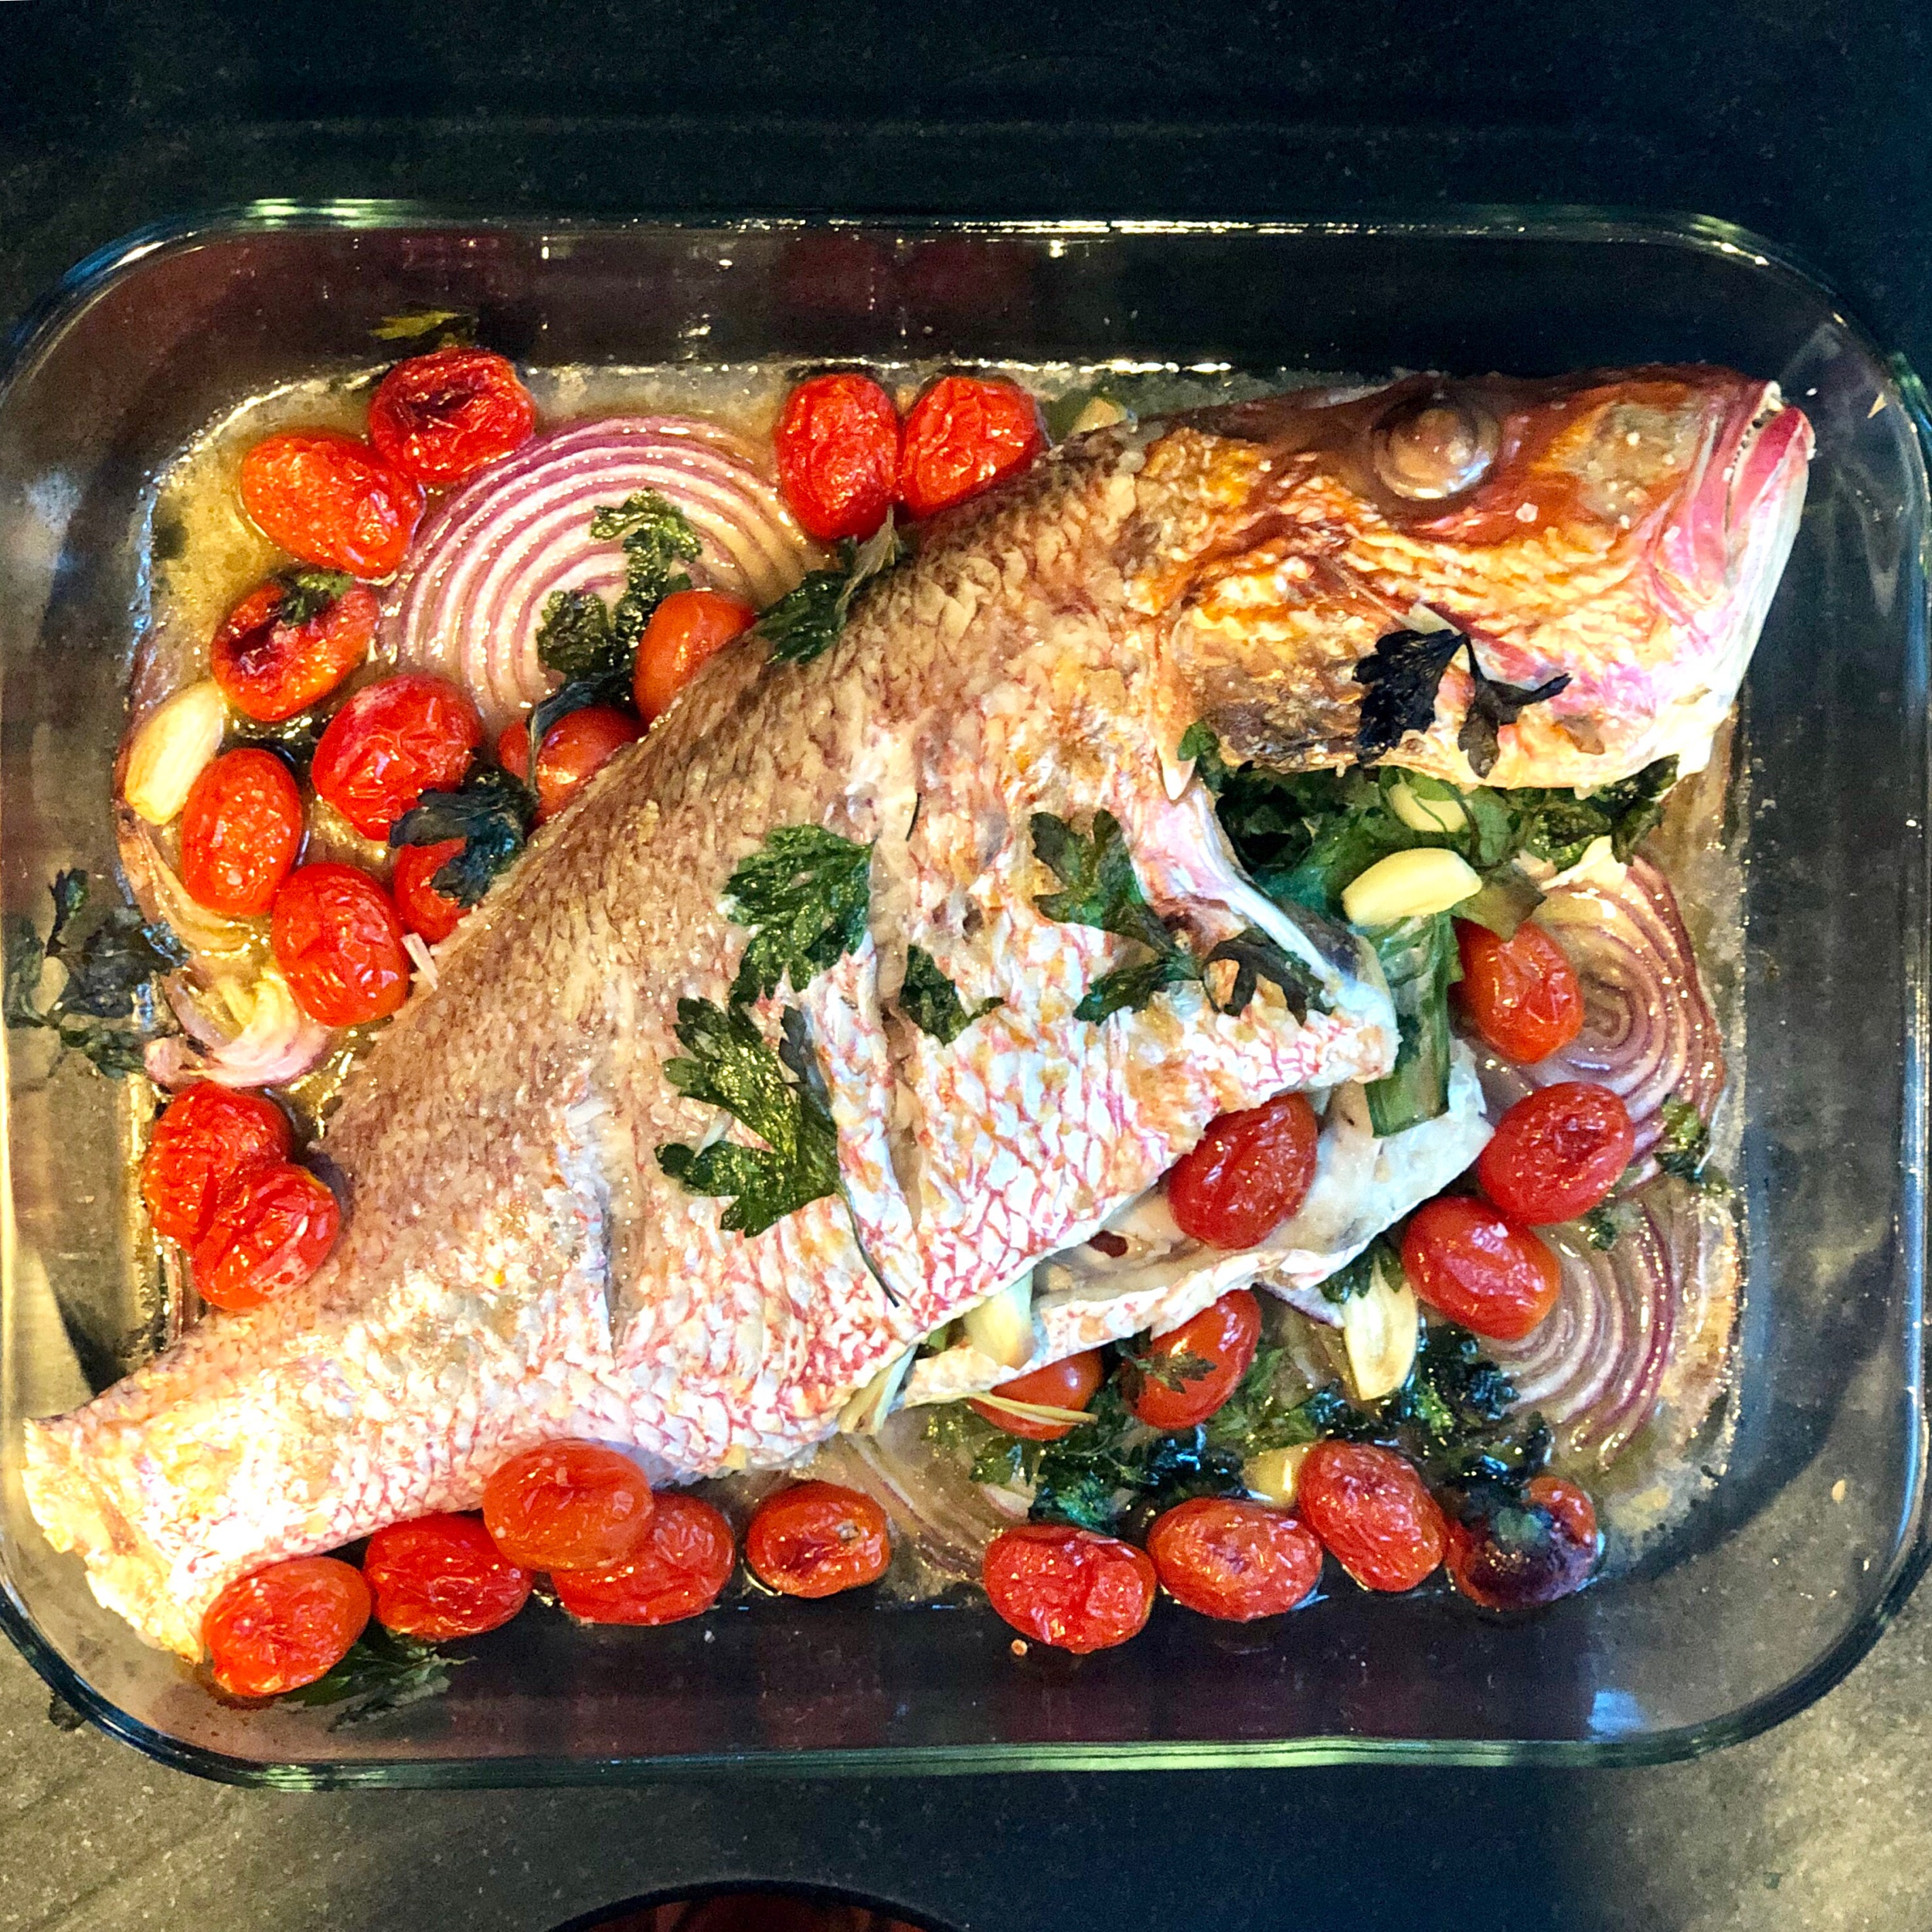 10. Once your timer has chimed after 25-30 minutes, turn your oven to broil and leave the fish in for another 5-7 minutes, until the top has browned a bit.  11. Remove the fish from the oven and debone it on a large wooden cutting board.